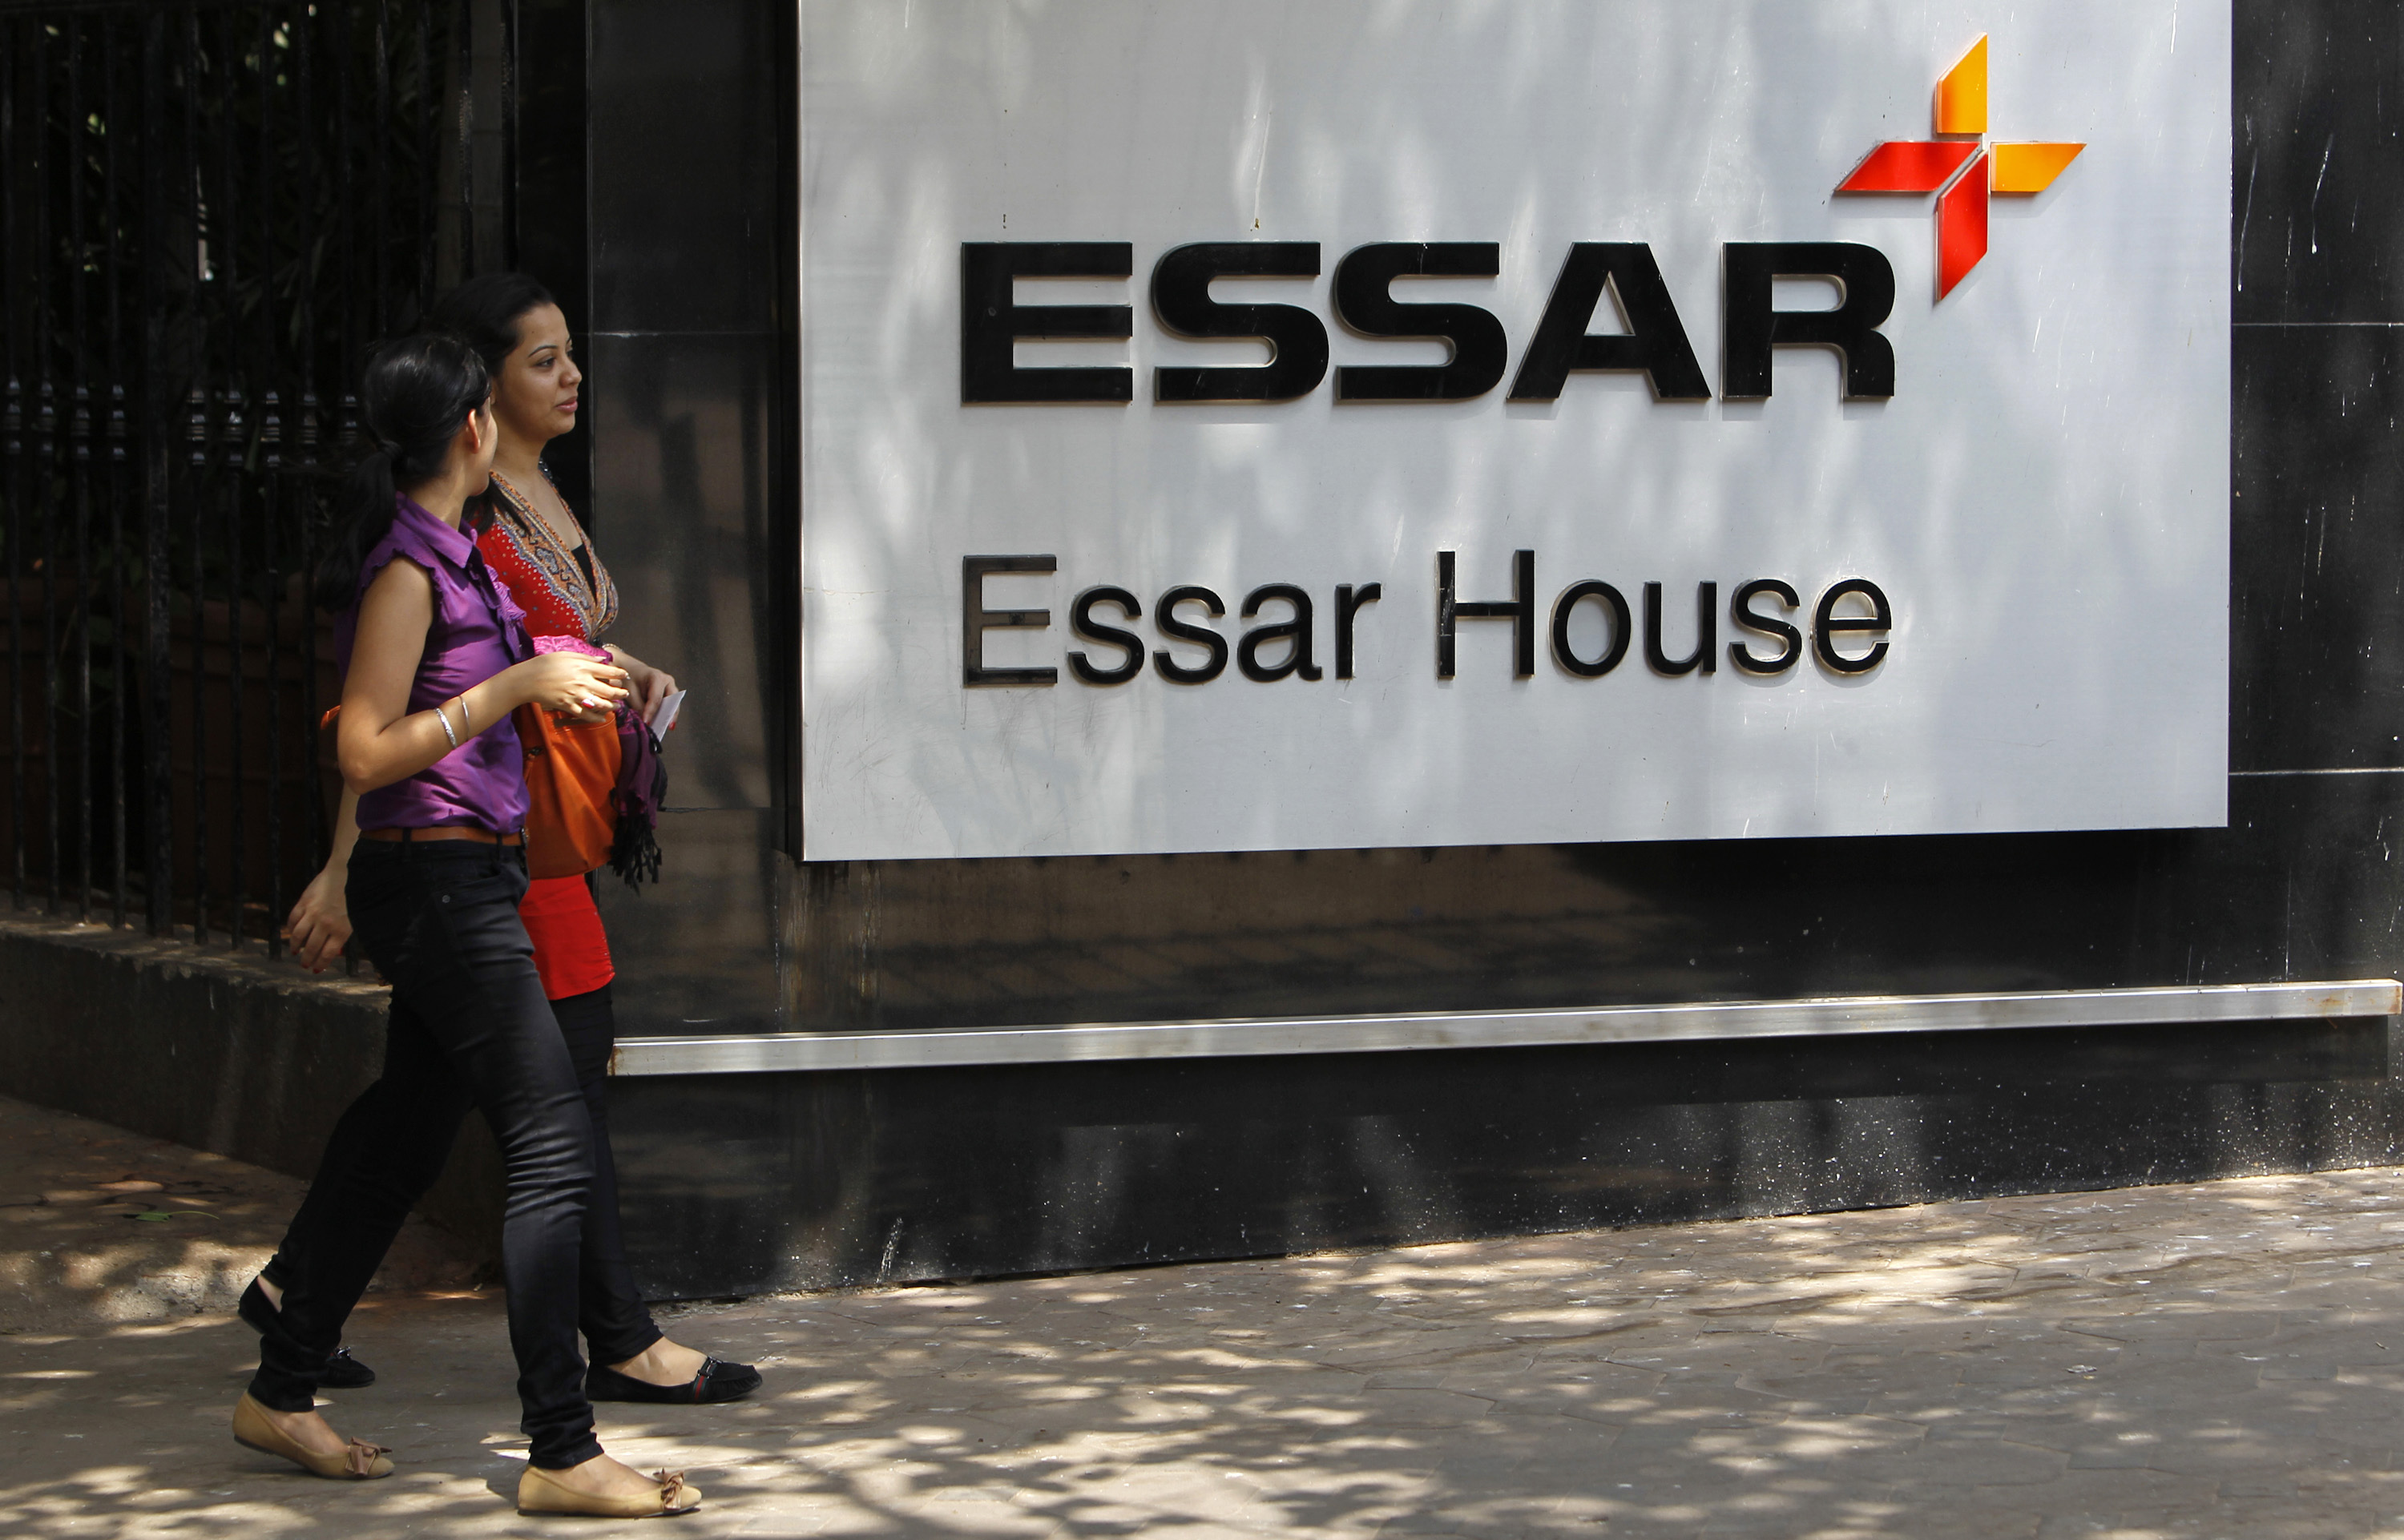 Employees walk past an Essar Group logo outside their headquarters in Mumbai May 20, 2013. India's Economic Times newspaper said the Essar Group conglomerate would sign a financial agreement with China's China Development Bank and China's largest oil and gas producer PetroChina Company during Chinese Premier Li Keqiang's trip to India. REUTERS/Vivek Prakash (INDIA - Tags: BUSINESS LOGO ENERGY POLITICS) - RTXZTPP